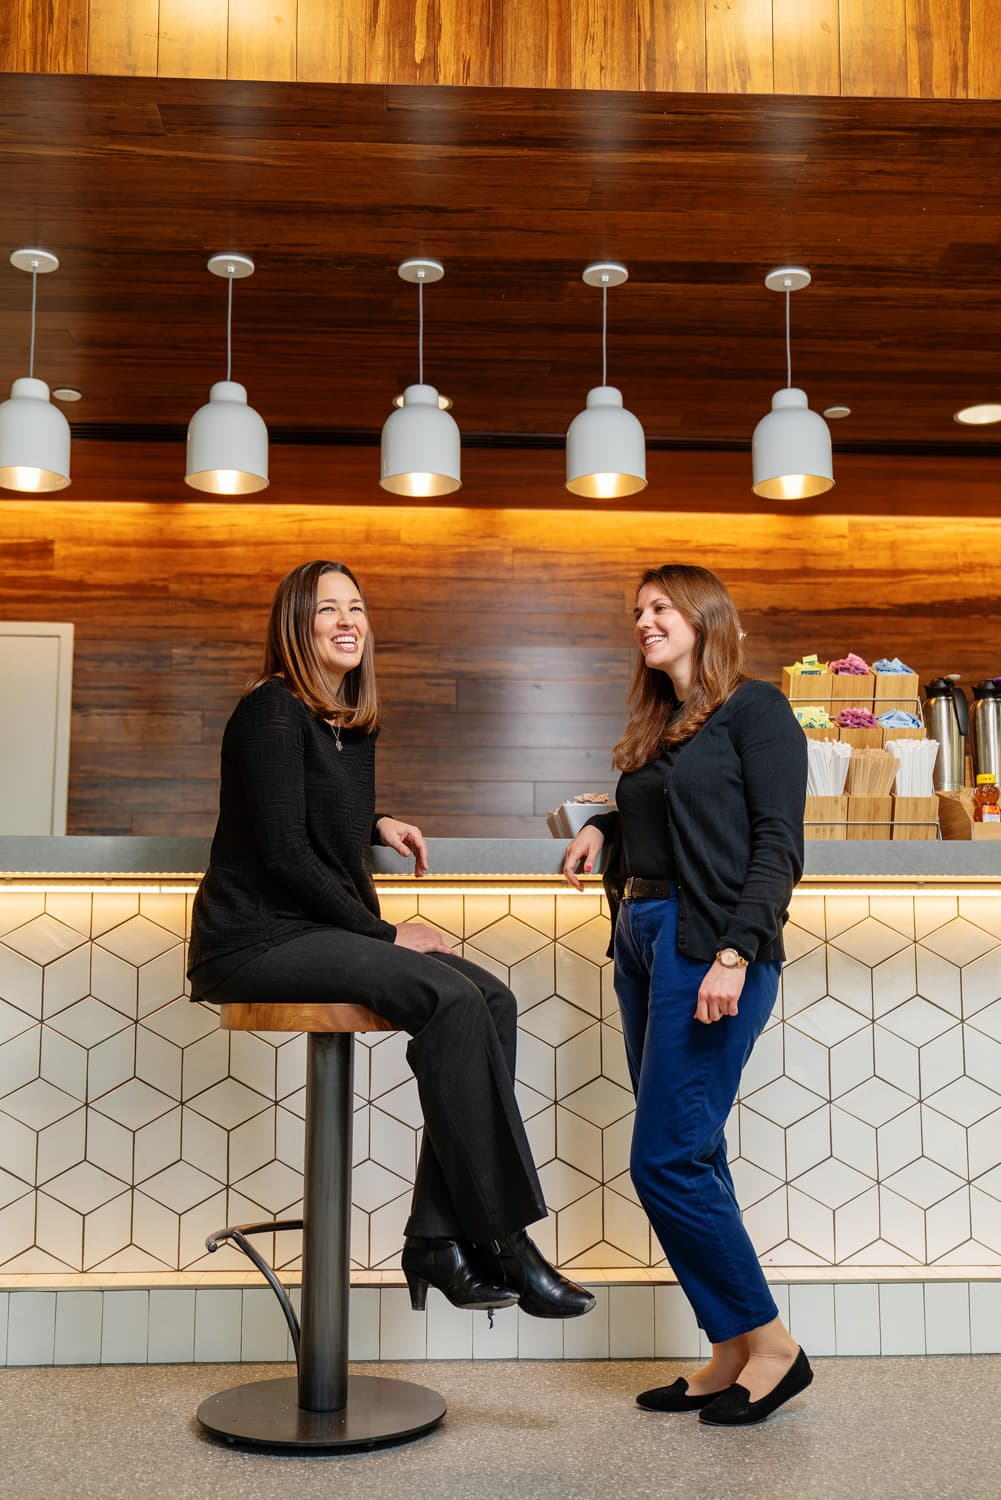 two people smiling at cafe counter